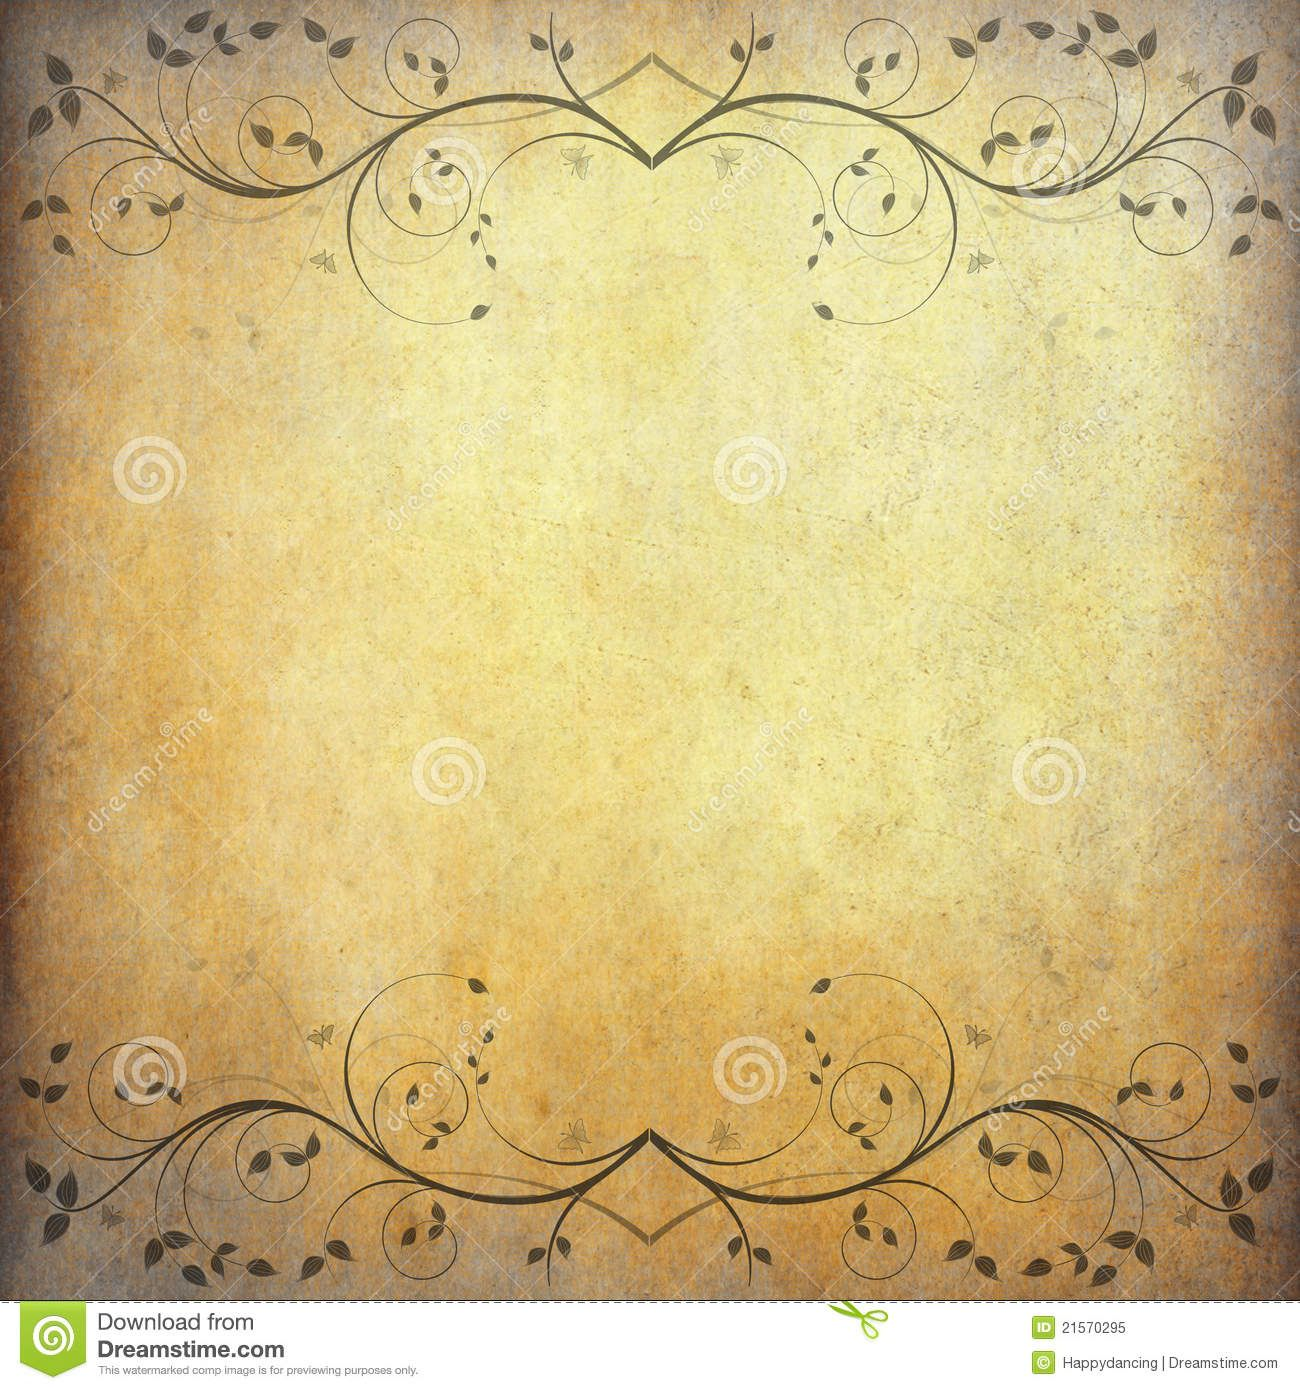 Old Paper Wallpaper: Old Paper Background With Vintage Flower